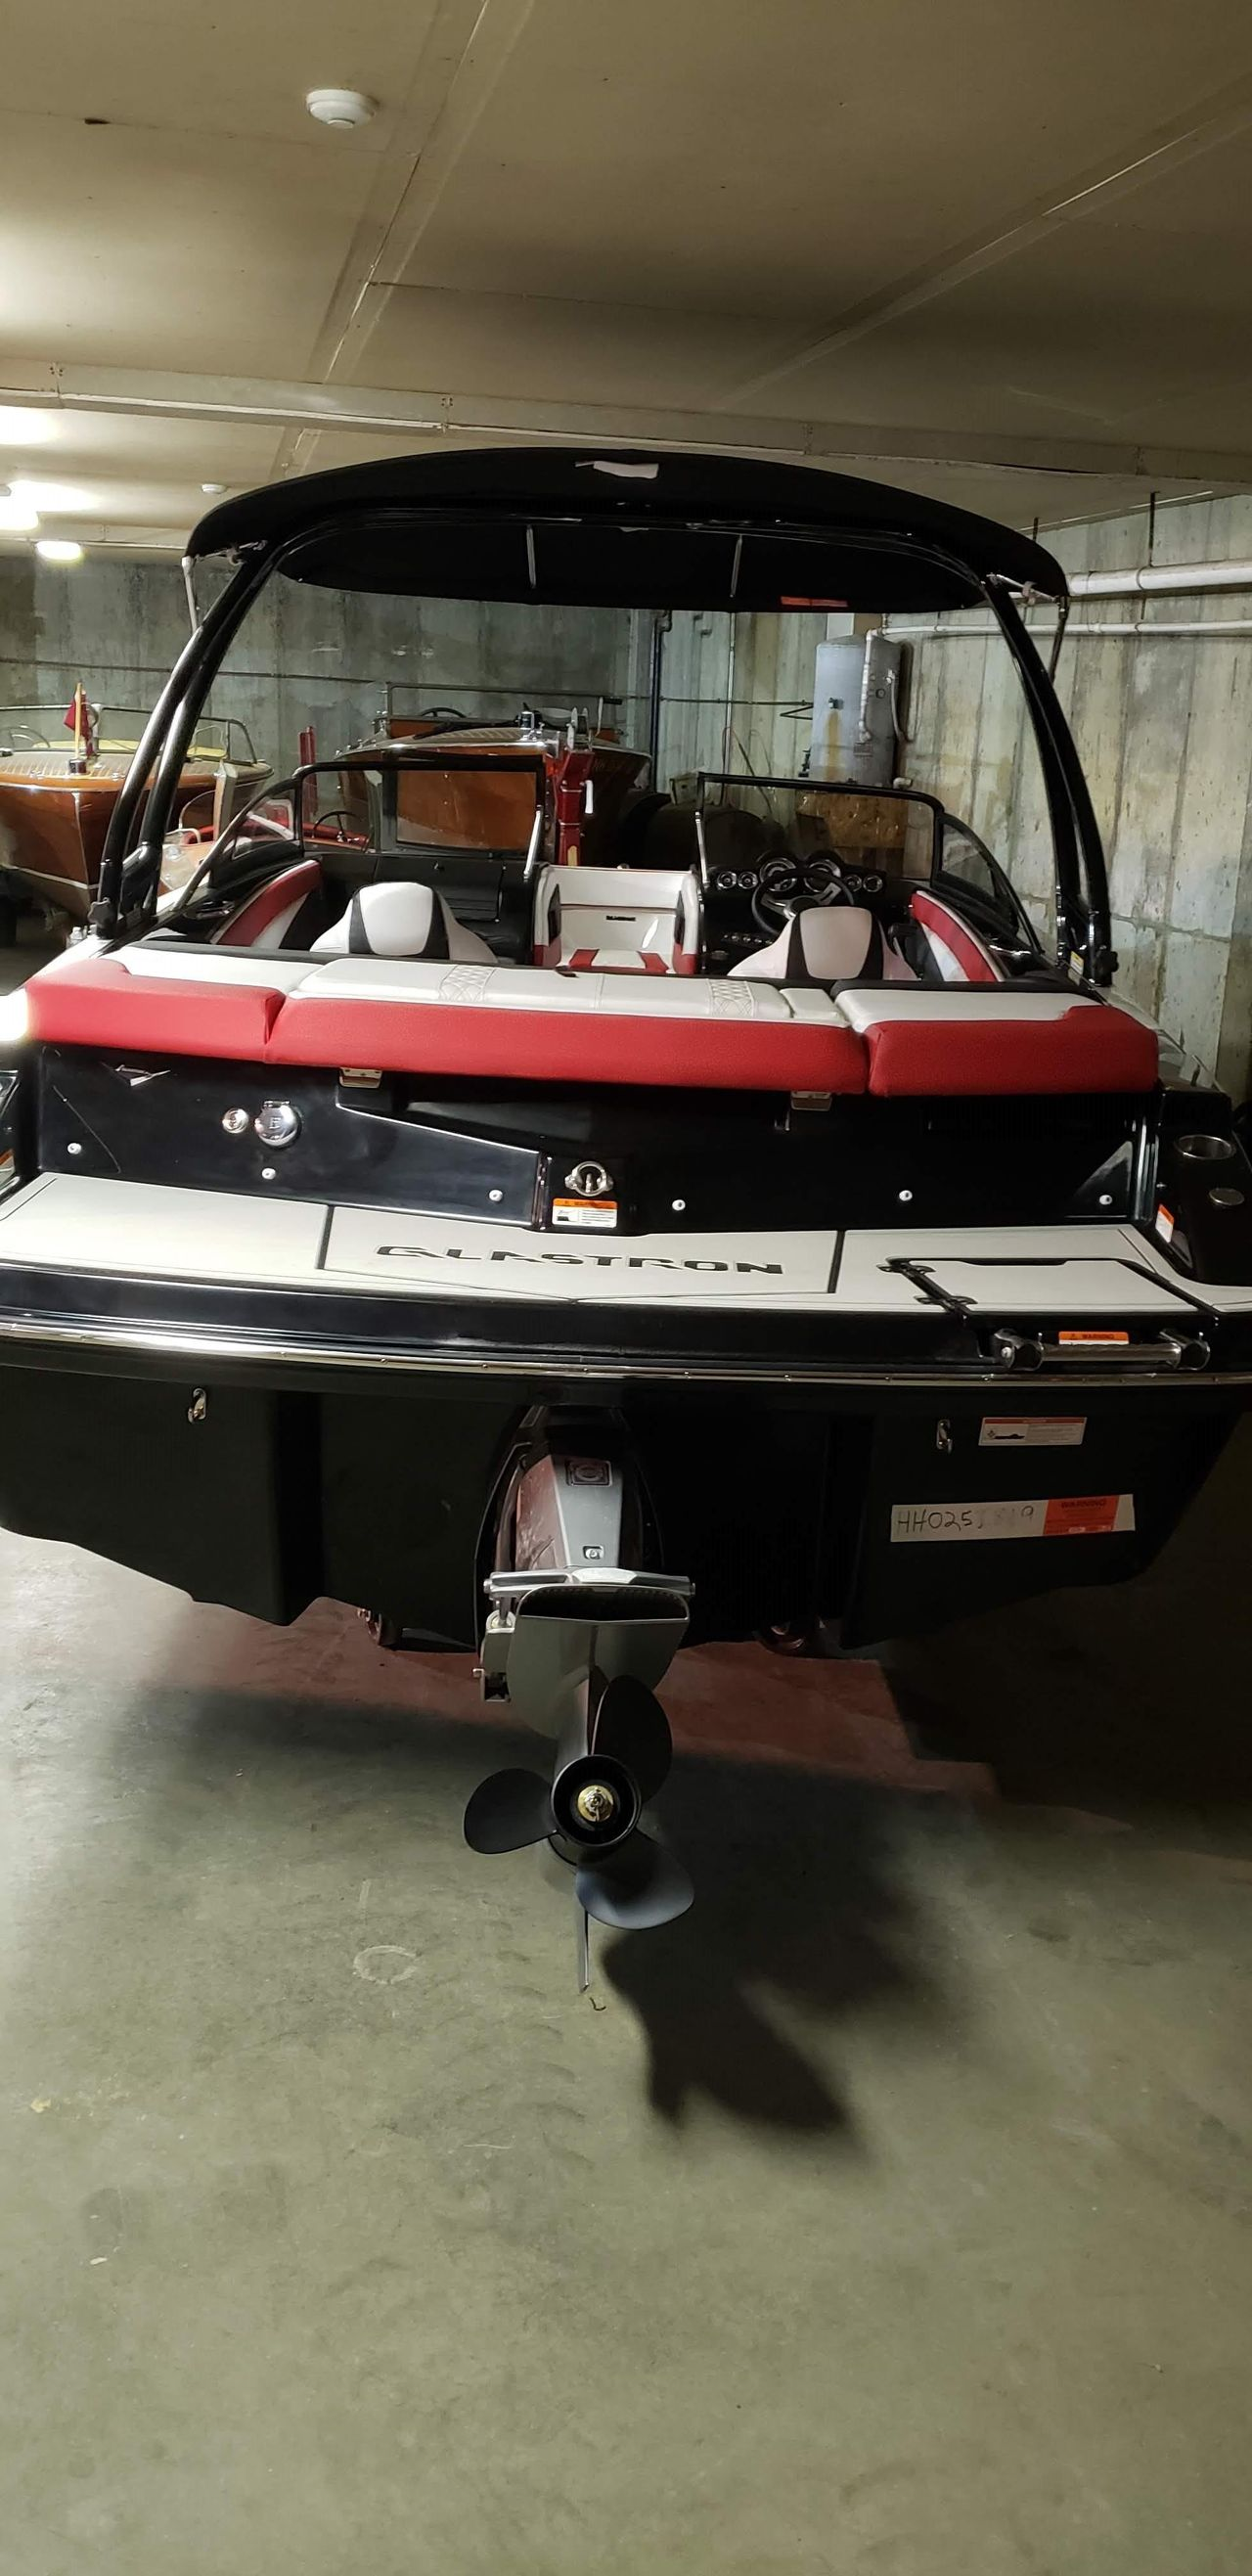 2019 New Glastron GTS 225 Bowrider Boat For Sale - Gilford